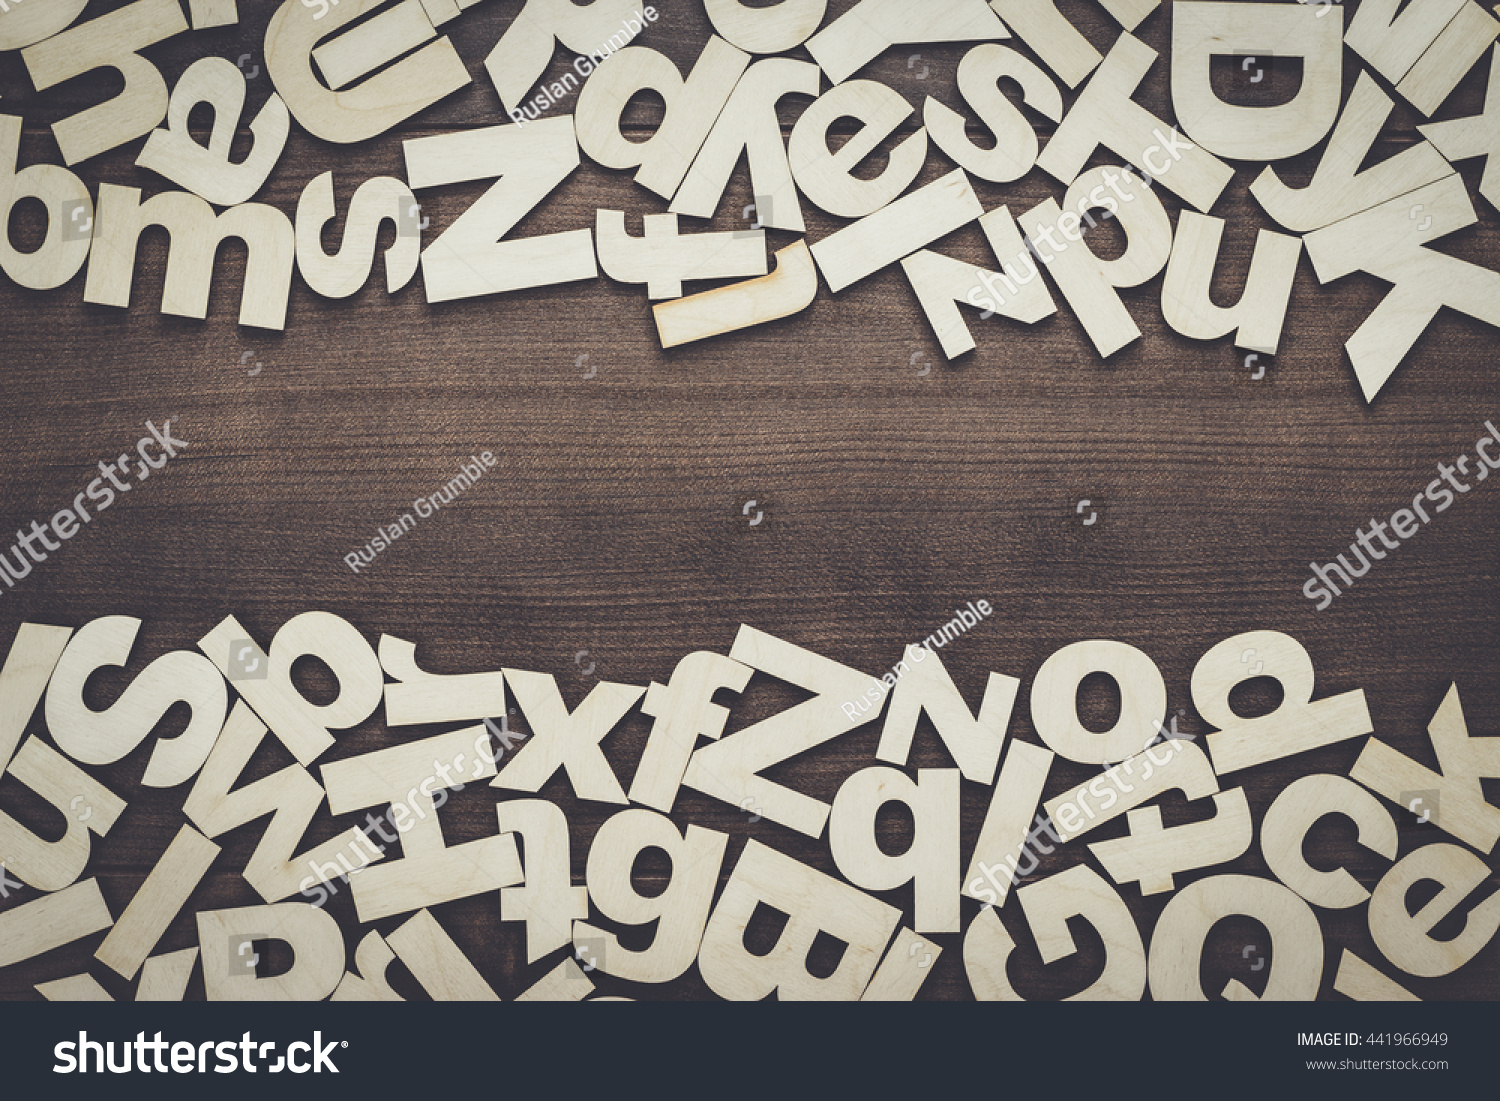 uppercase and lowercase wooden letters background on the table preview save to a lightbox